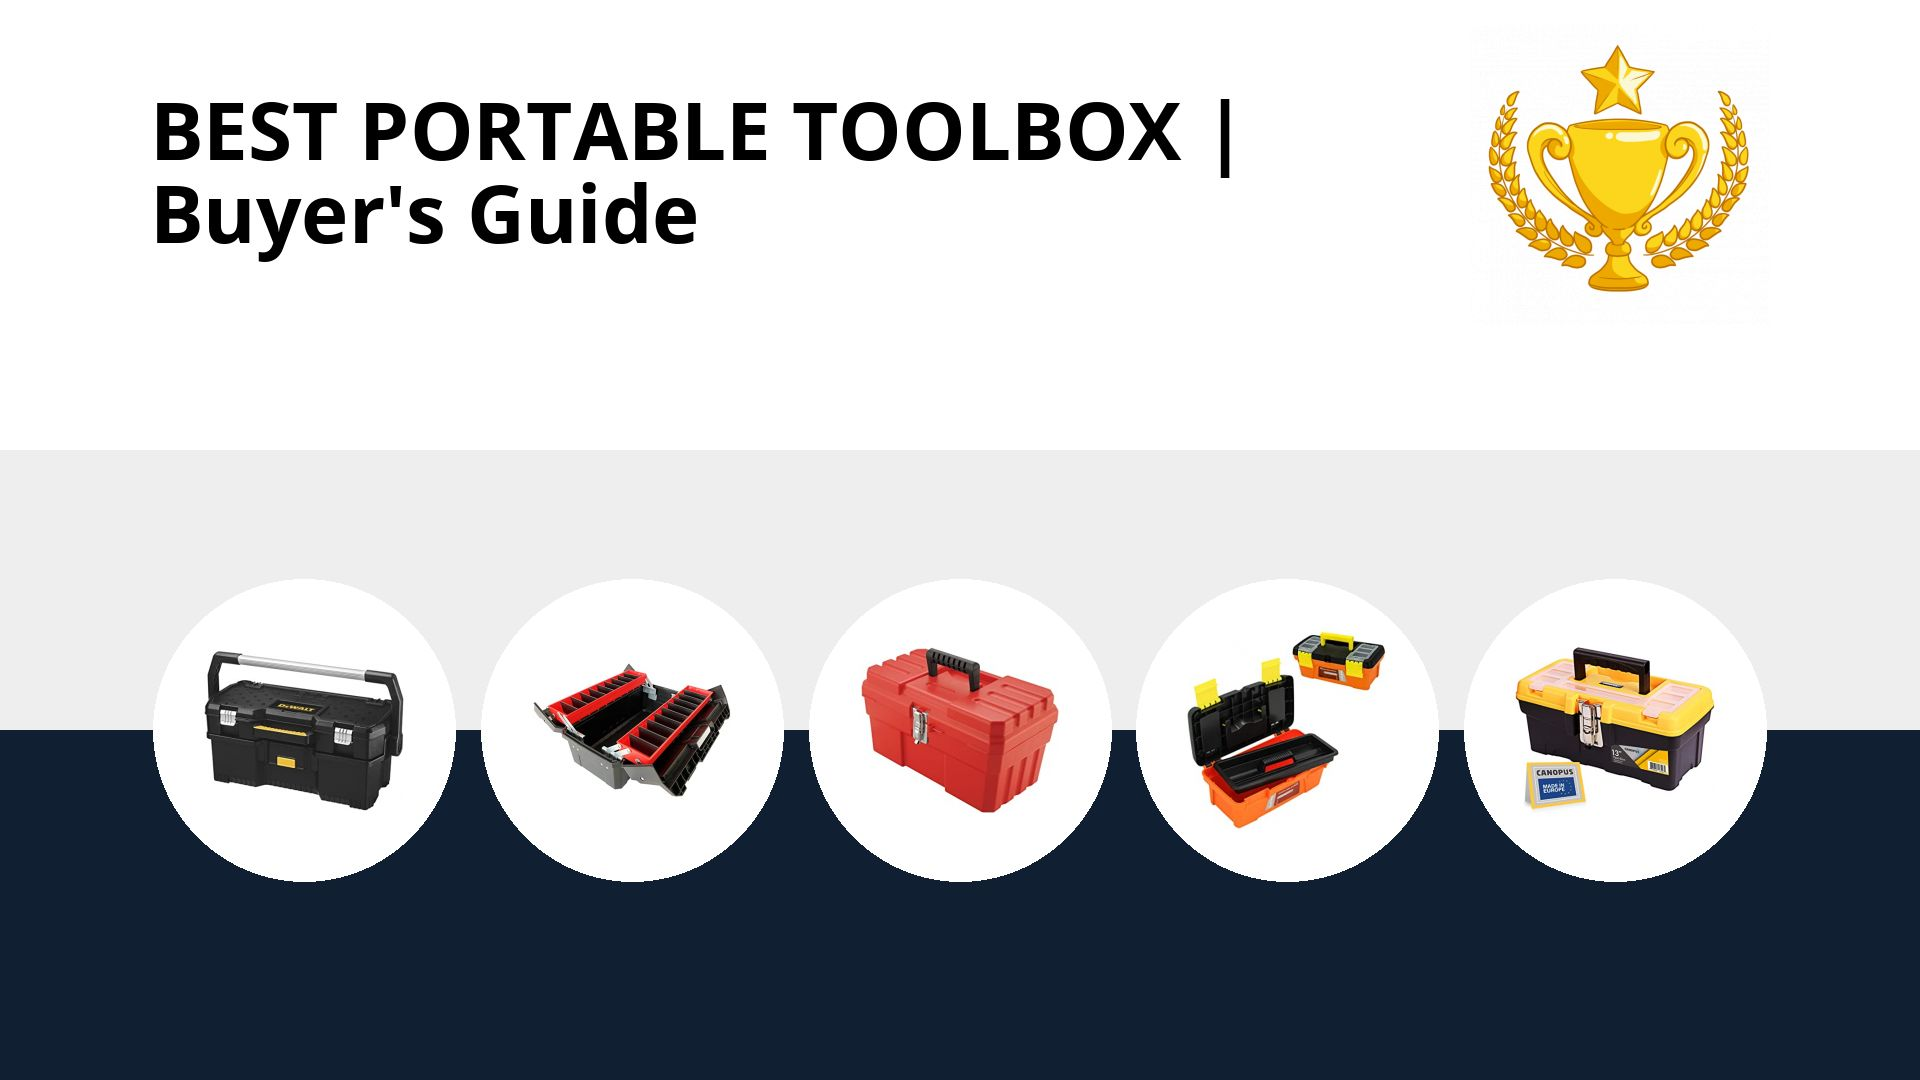 Best Portable Toolbox: image